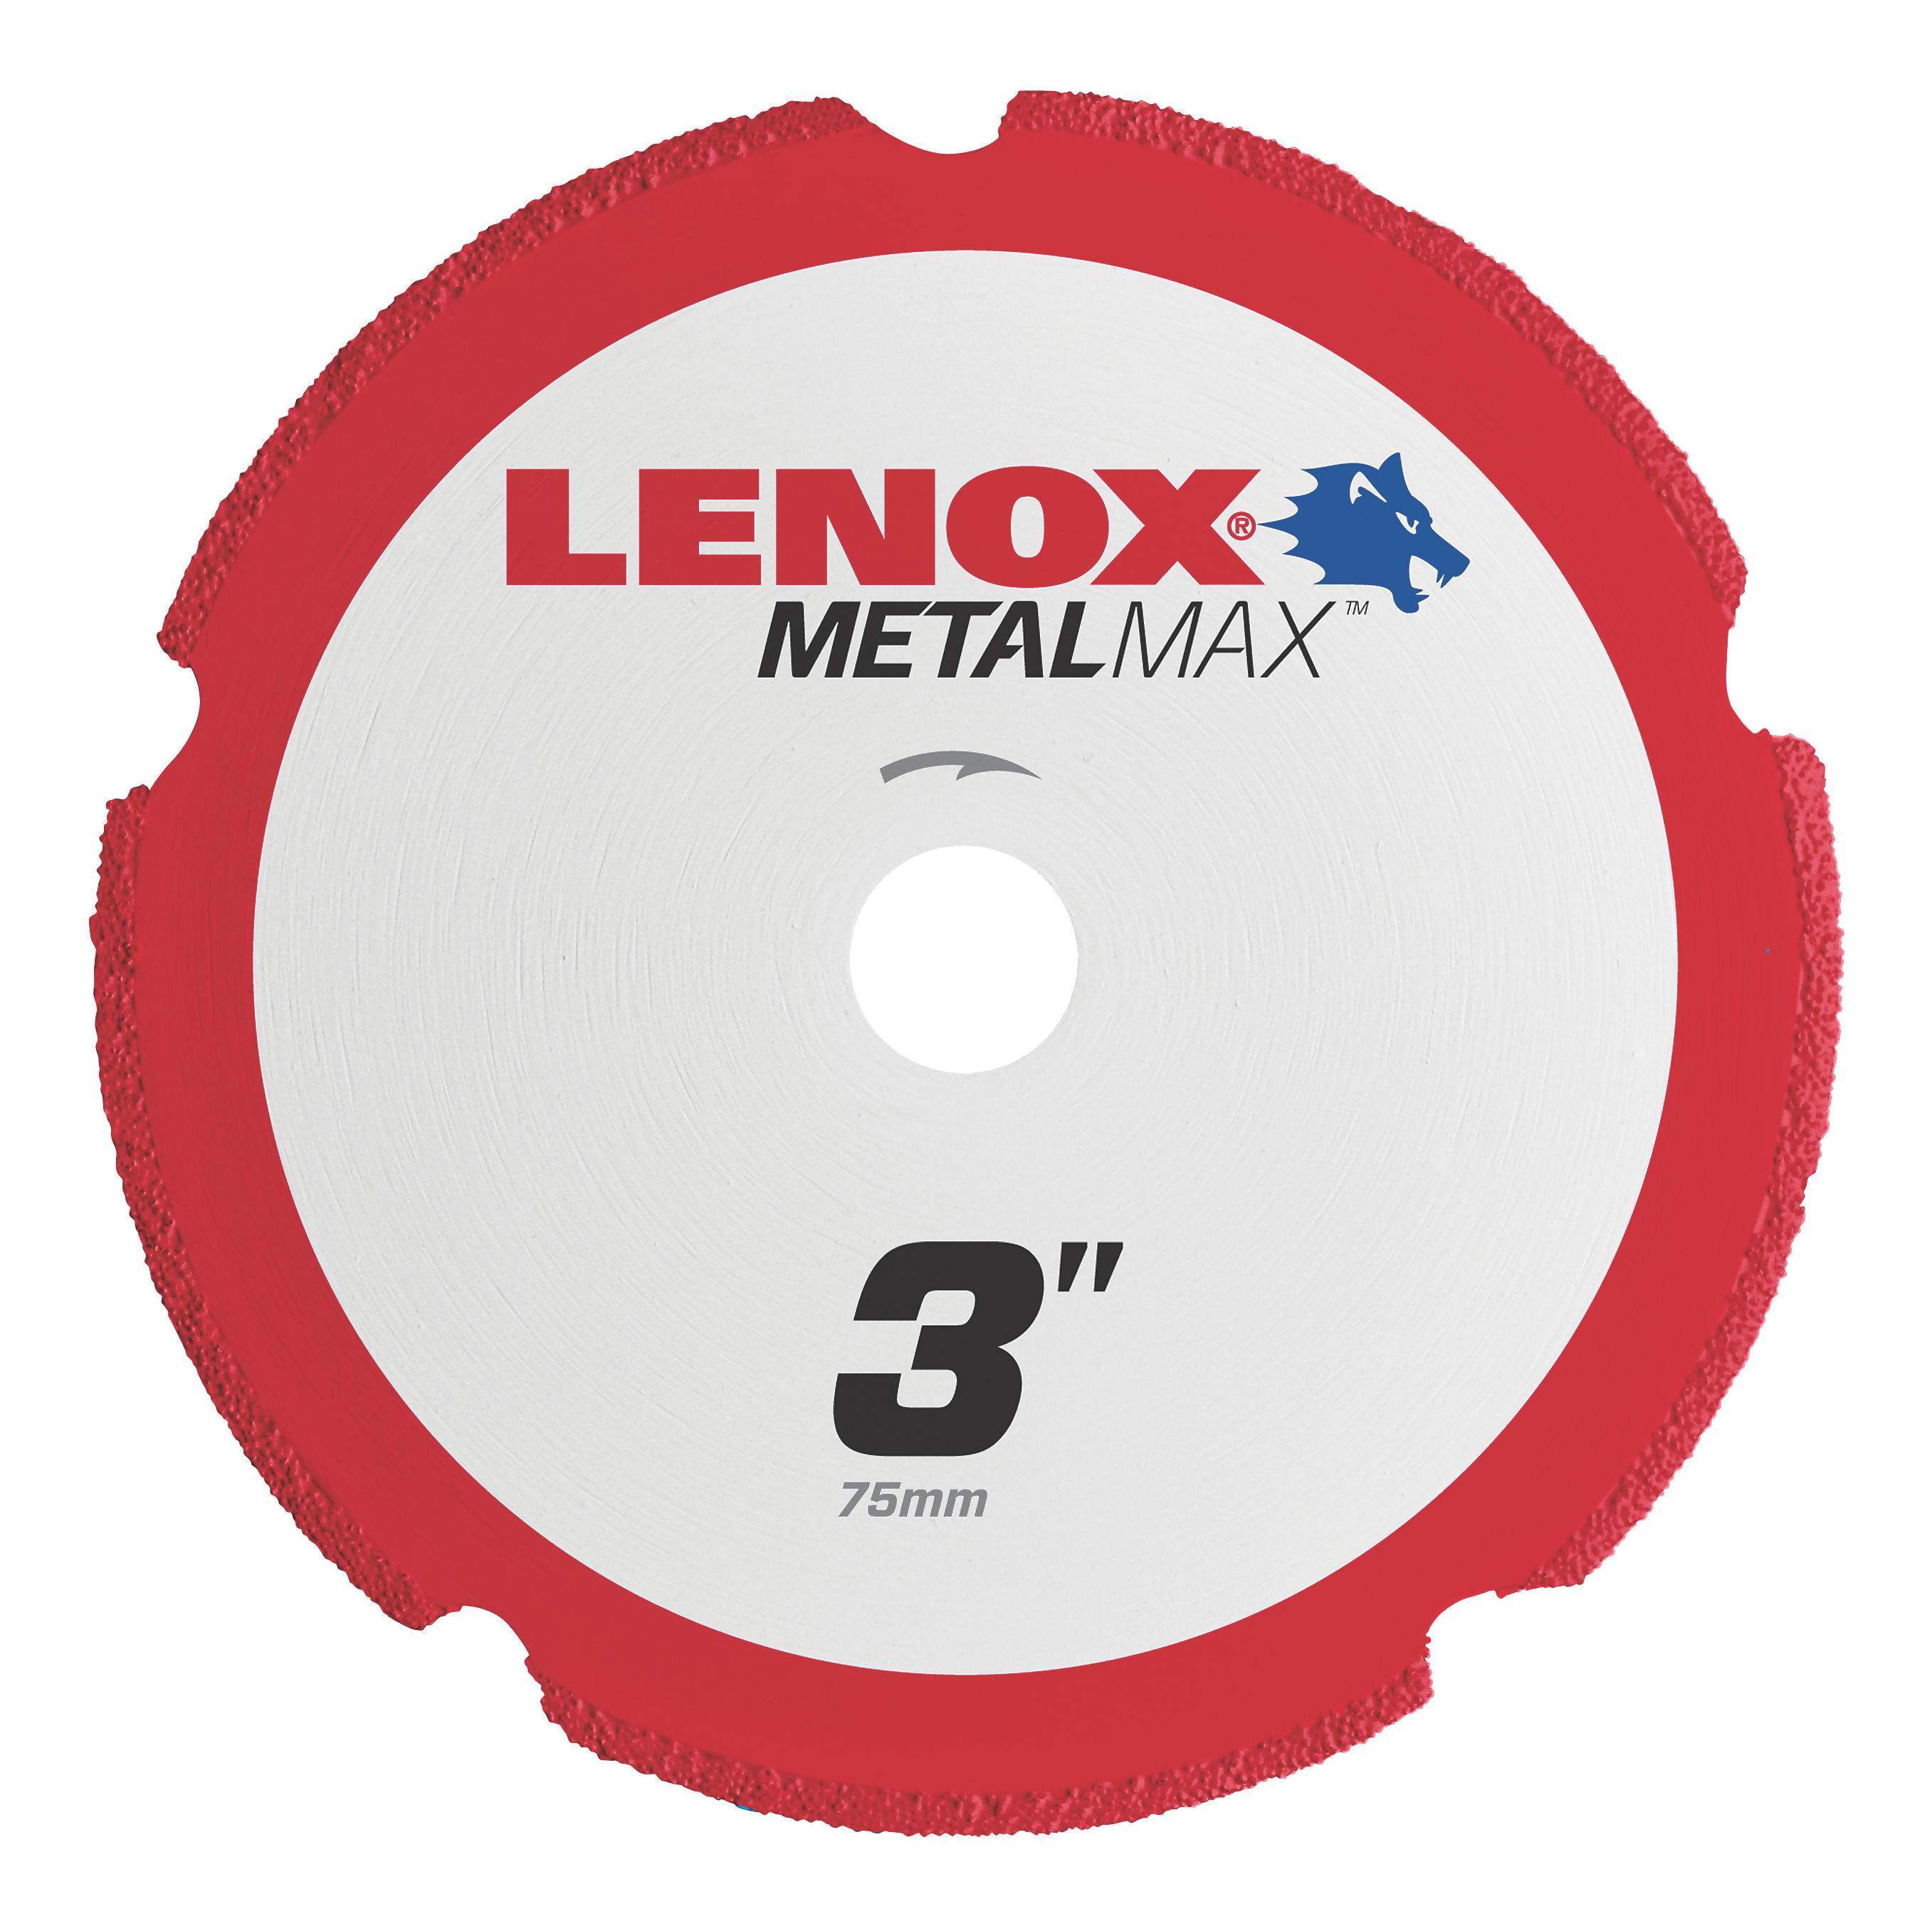 LENOX® TOOLS METALMAX™ 1972918 METALMAX™ Type 1 Cut-Off Wheel, 3 in Dia x 0.05 in THK, 3/8 in Center Hole, 40/50 Grit, Diamond Abrasive